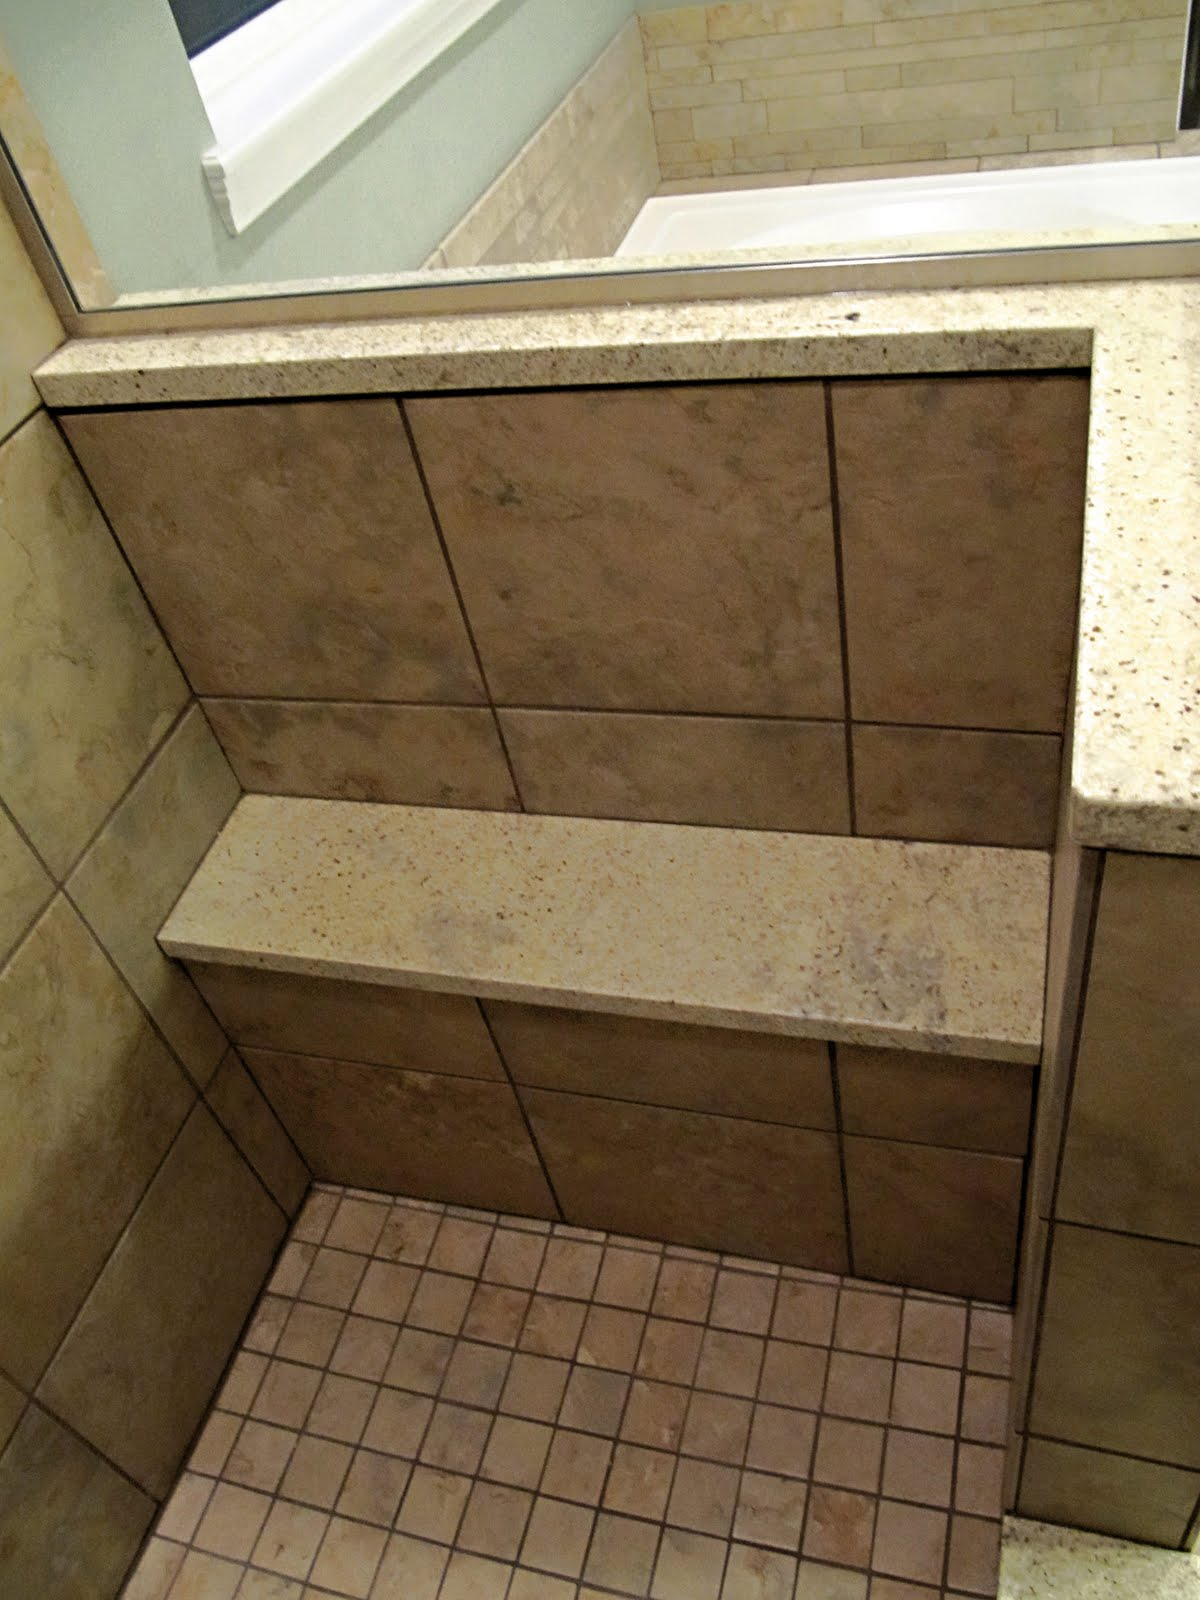 the shower niche gave us fits i chose a large niche from rediniche it installed well but using the provided adhesive to cover with tile did not work